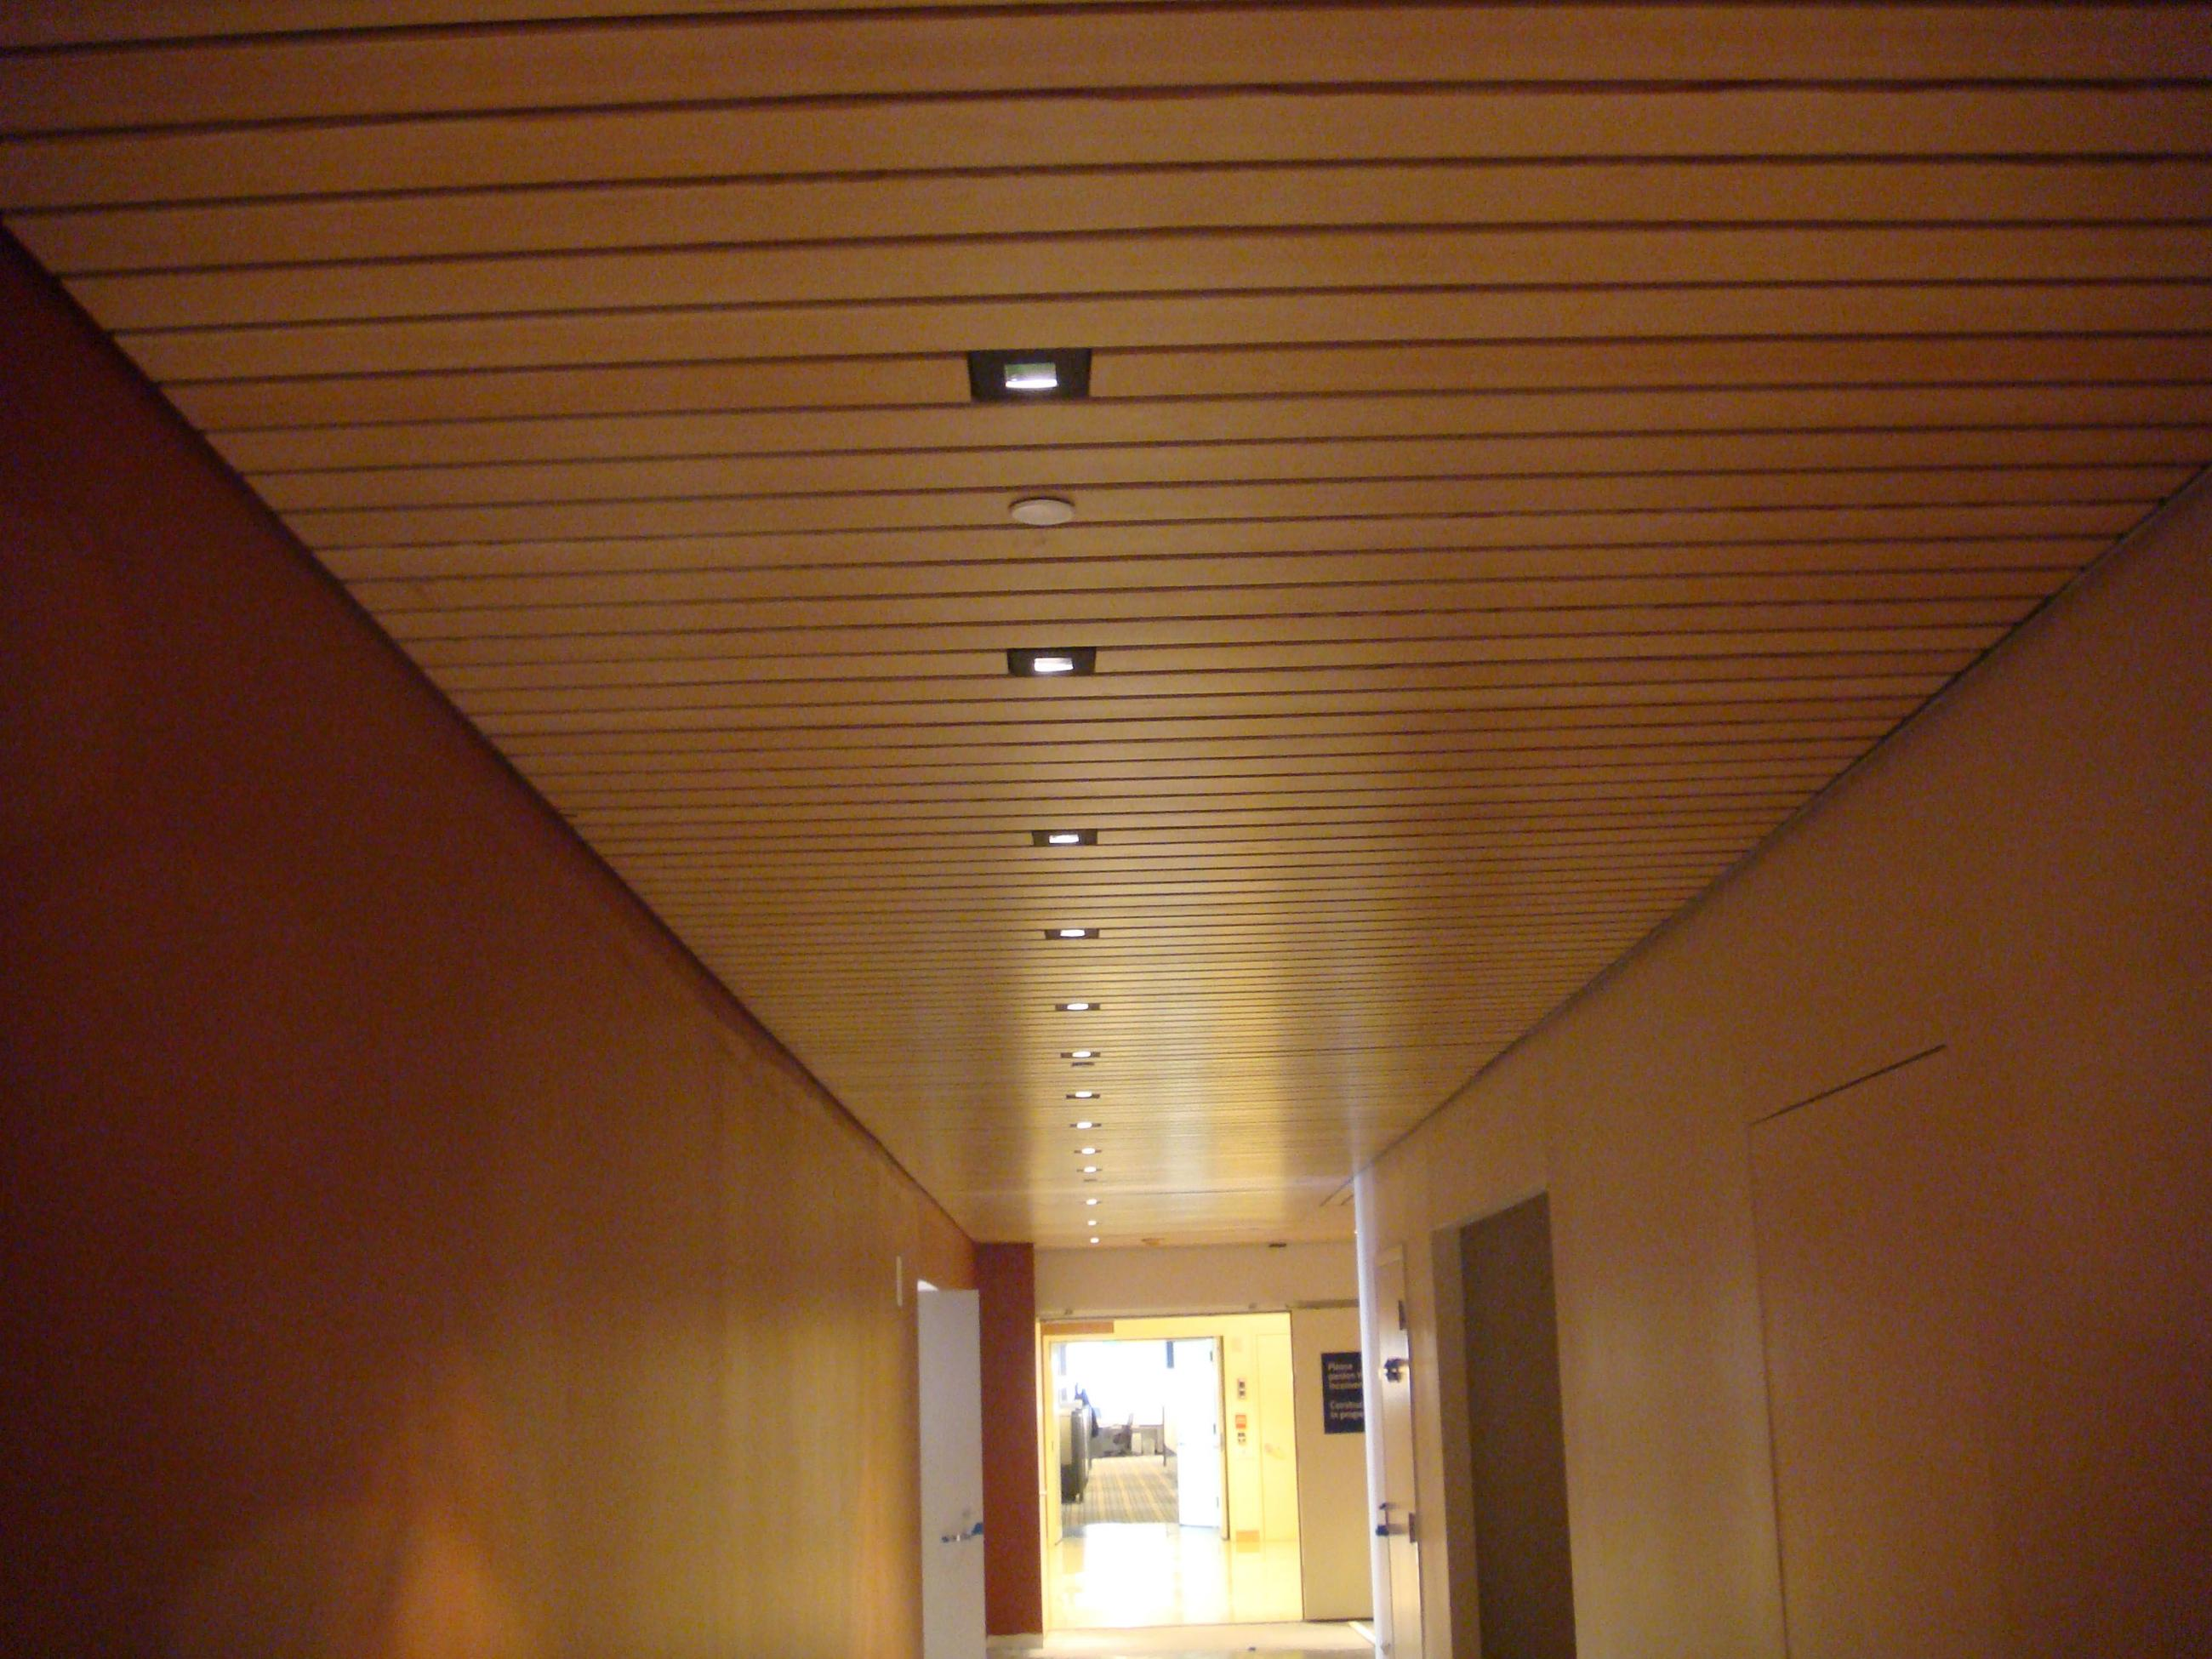 climateworks - Armstrong Wood Ceiling